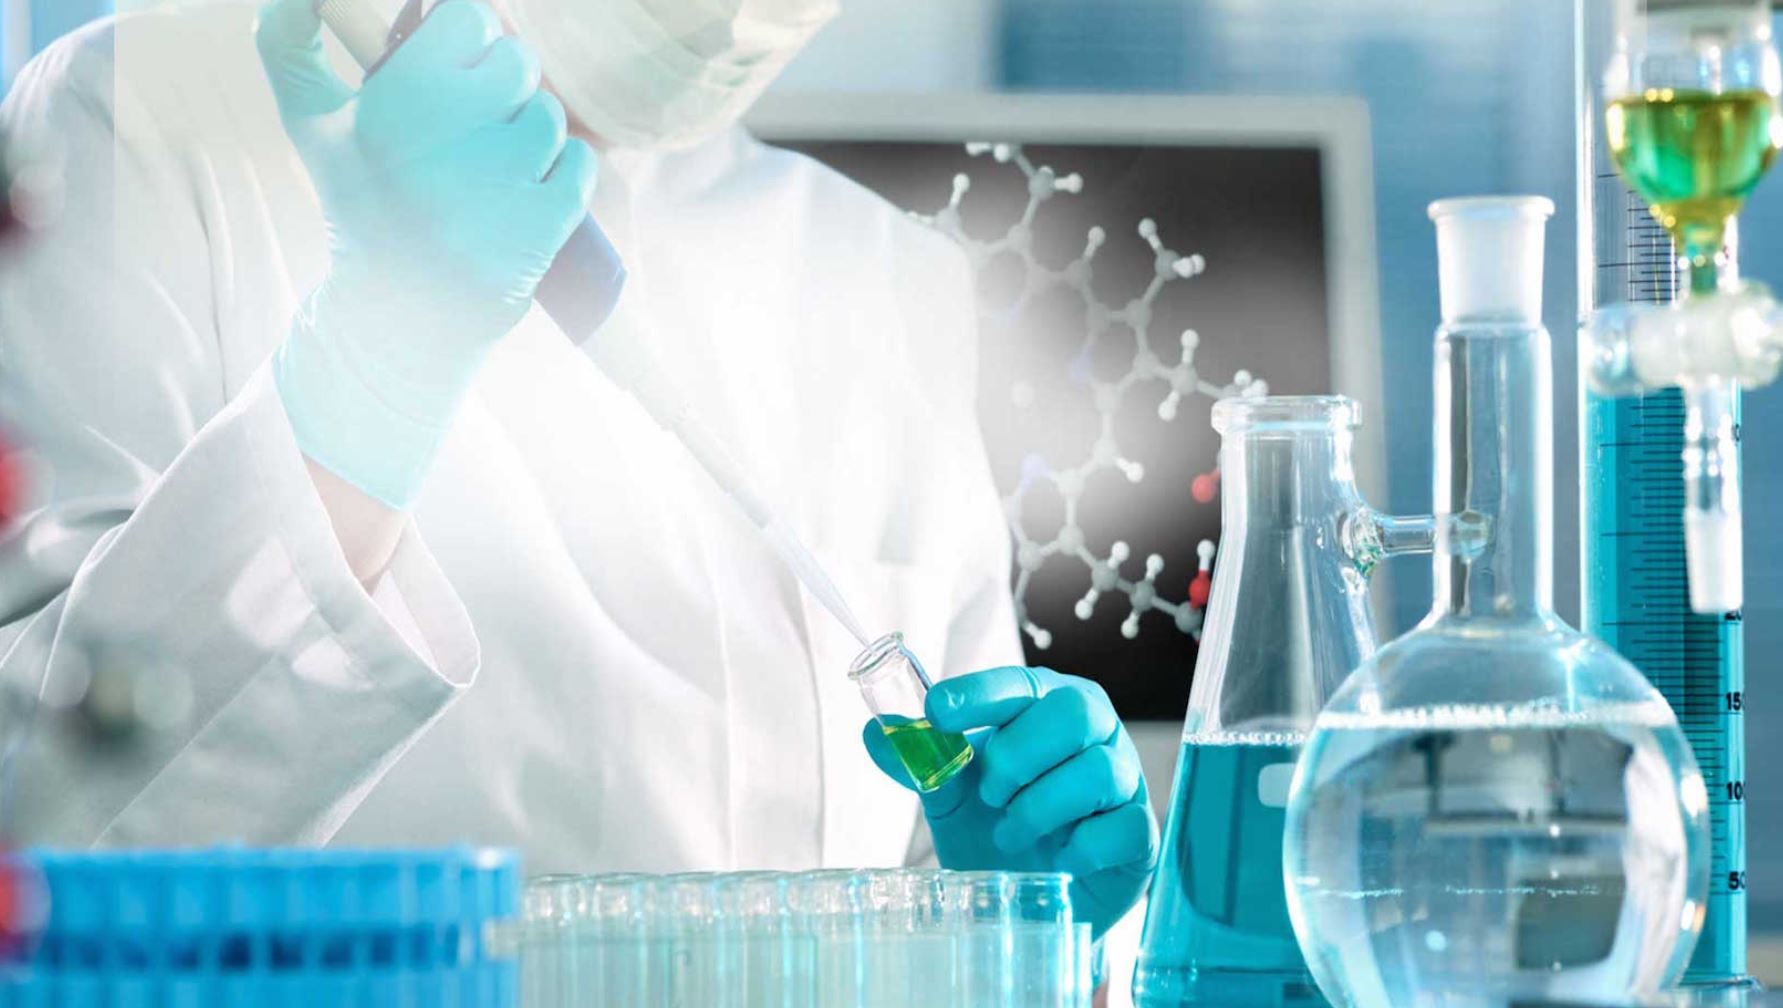 Plans to turn WA life sciences industry into world leader - Biotech News